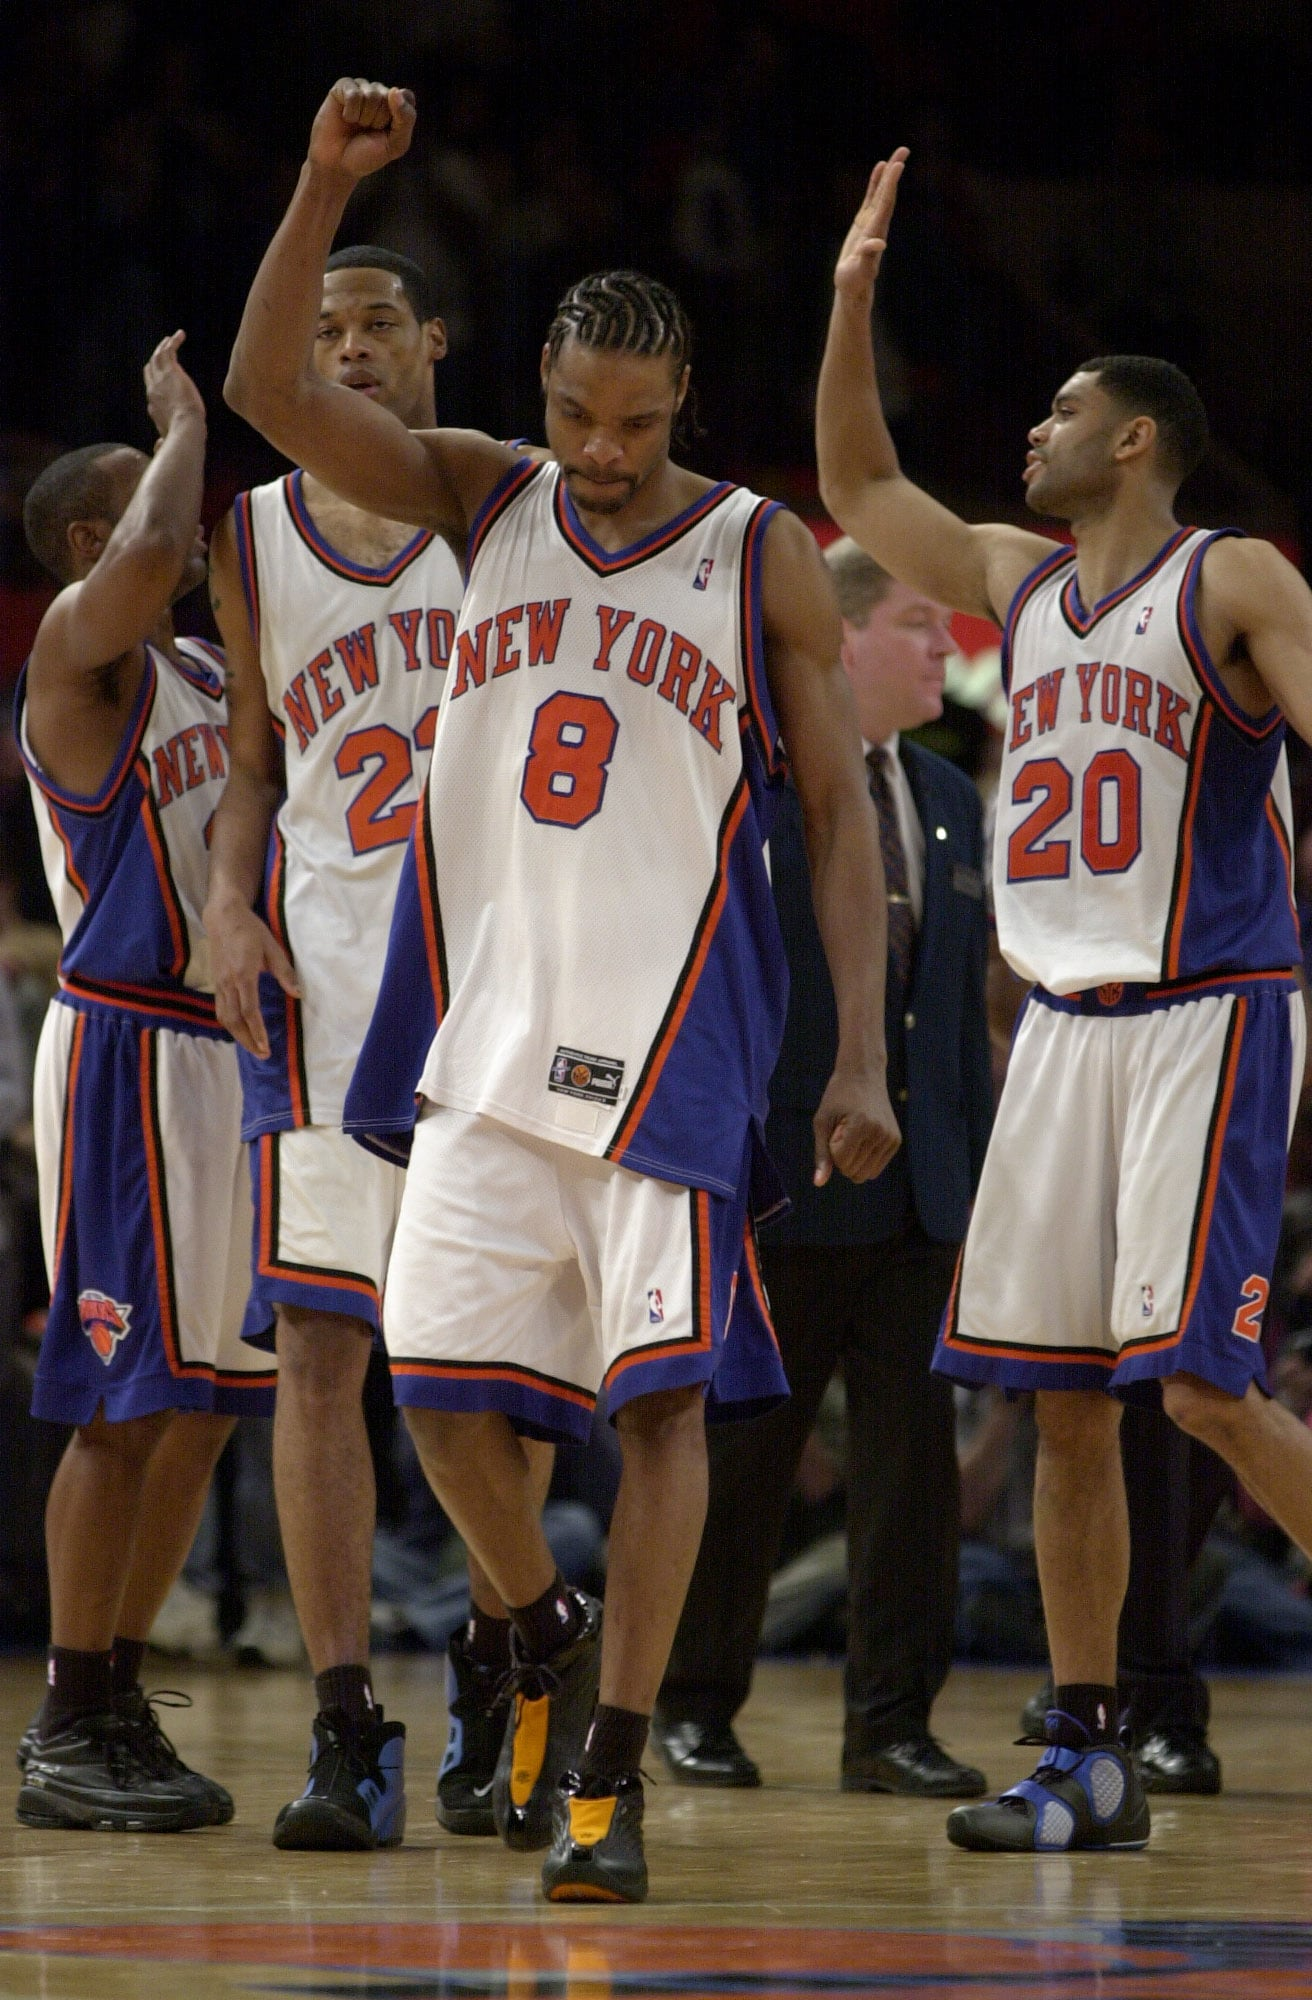 New York Knicks: Gallery: Sprewell In The Orange And Blue